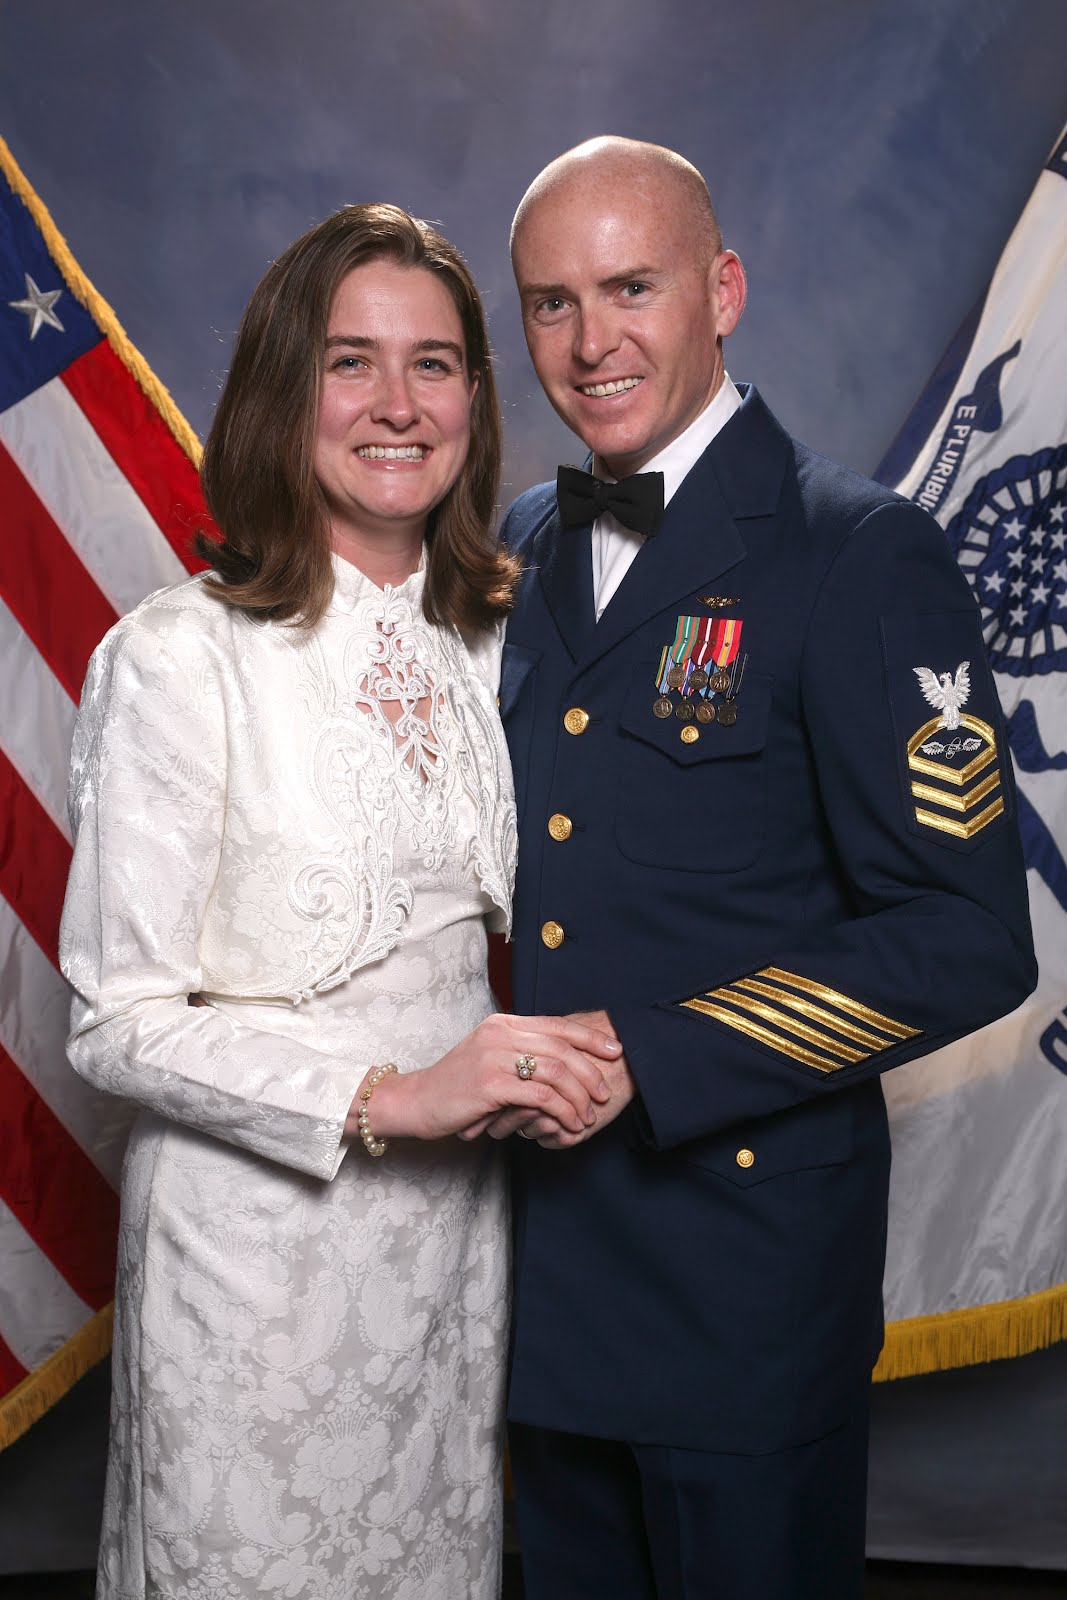 Coast guard dinner dress blue - All Pictures top